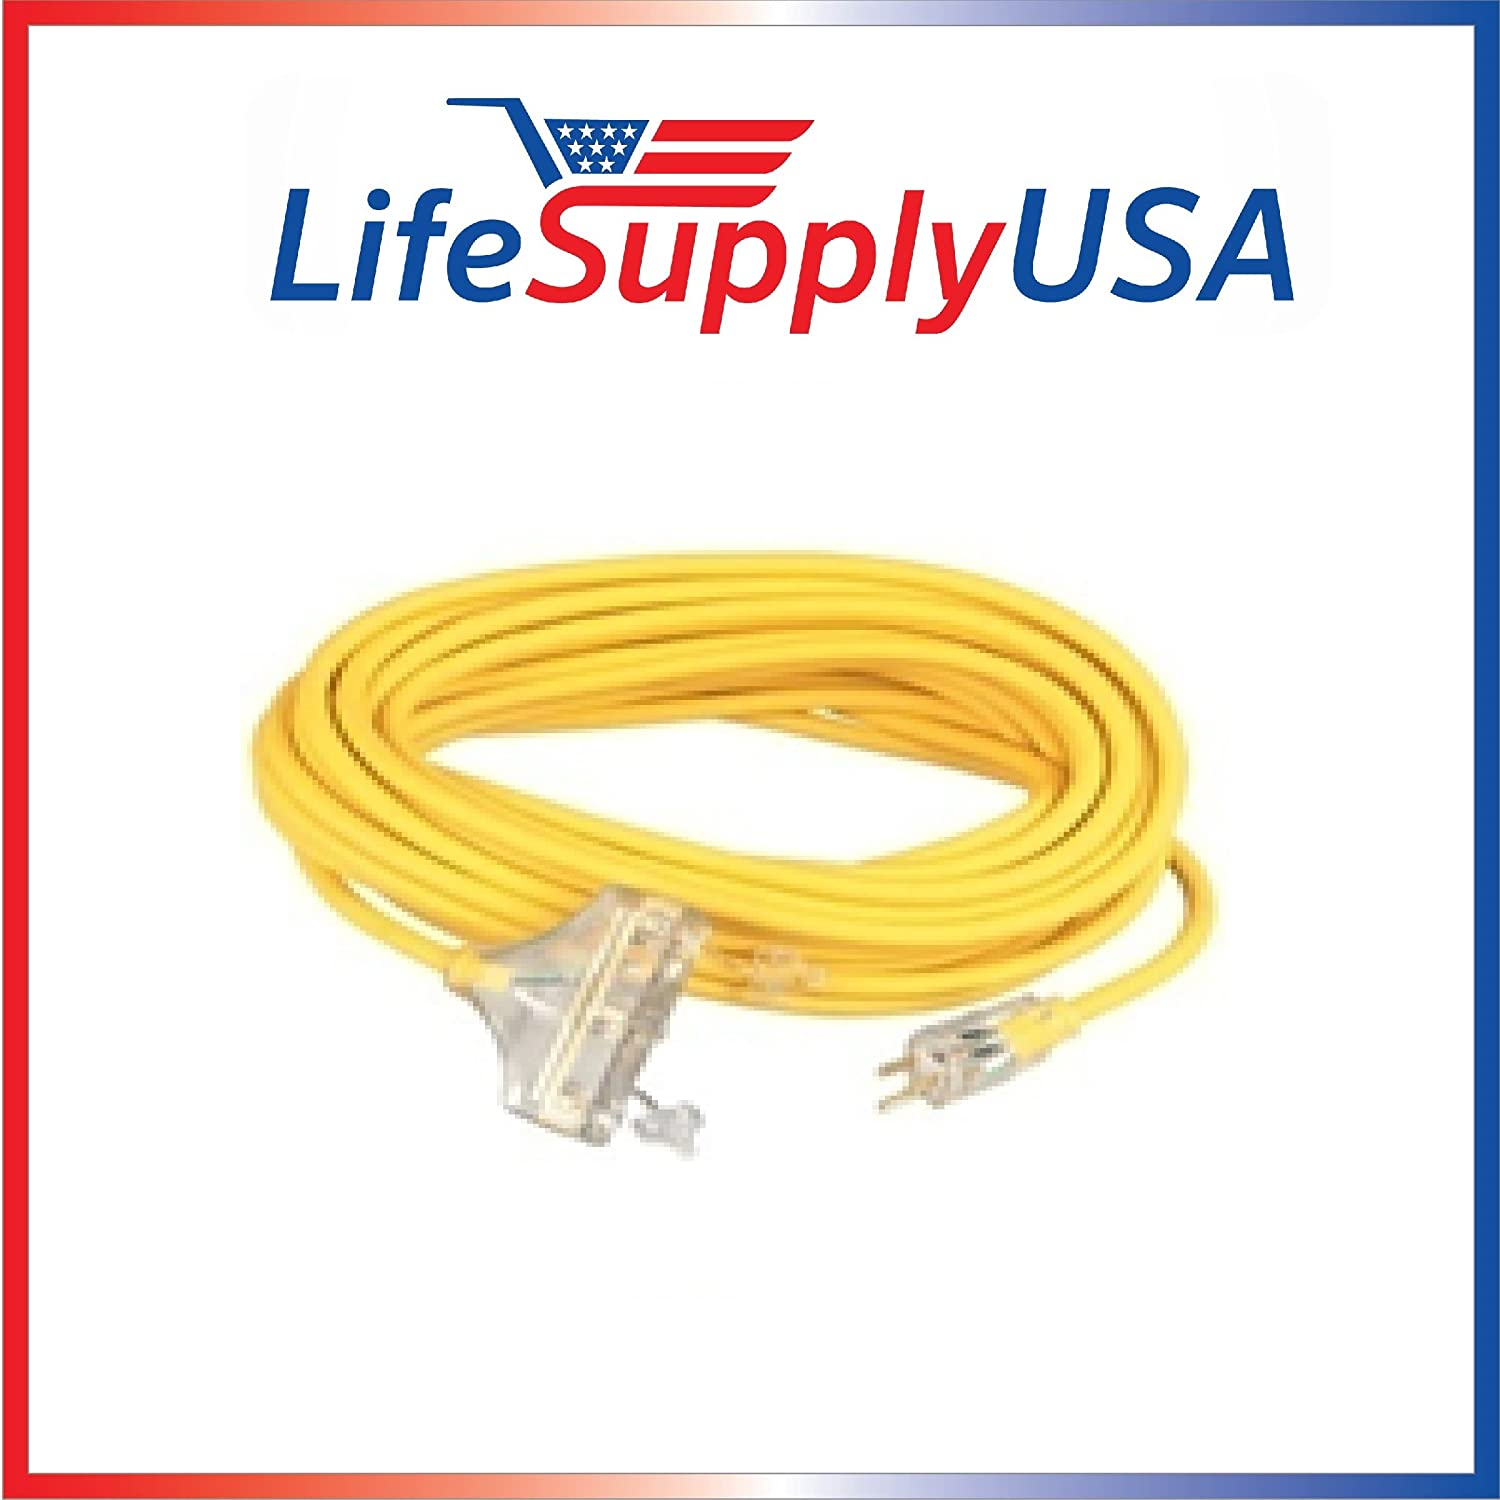 12/3 100ft Wire Gauge 3 OUTLET Tri-Source SJT Indoor Outdoor Vinyl LIGHTED Electric Extension Cord, 100 Feet